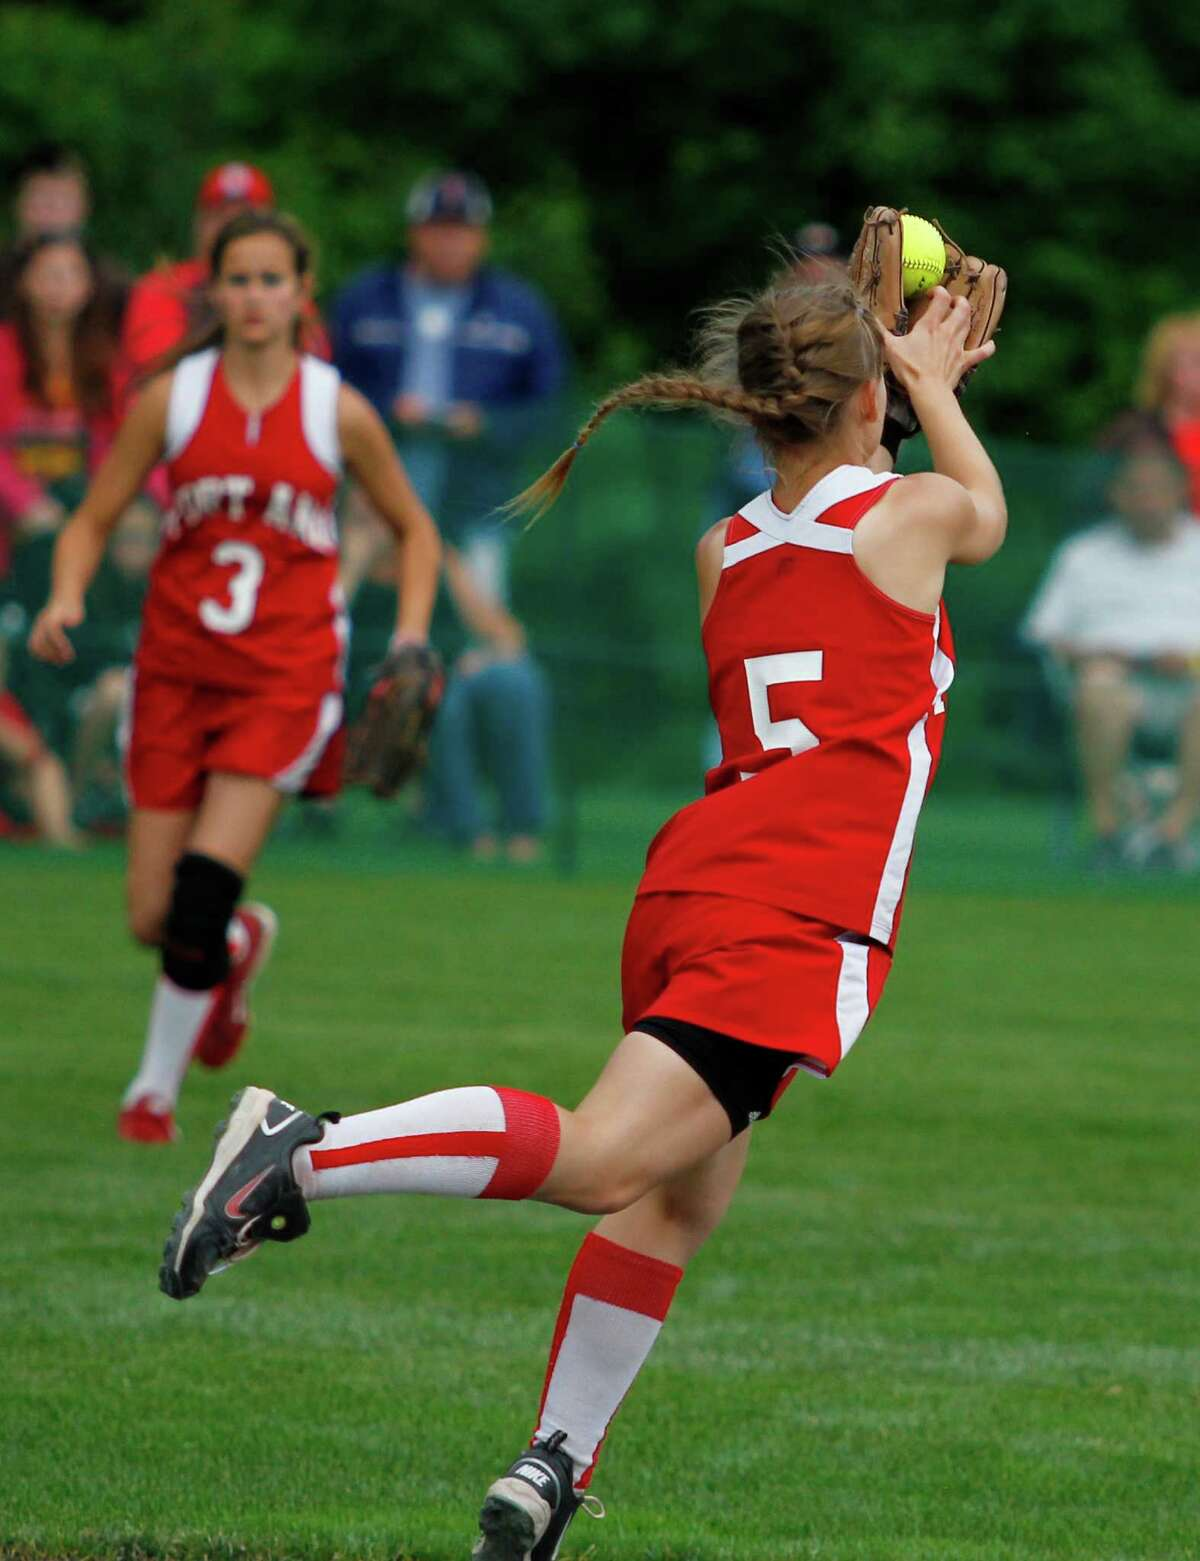 Fort Ann Junior second baseman Kimmi Ostrander, 5, makes an over the shoulder jumping catch during the Class D state championship game against Afton, Saturday, June 8, 2013 at the Adirondack Sport Complex in Queensbury, N.Y. (Dan Little/Special to the Times Union)